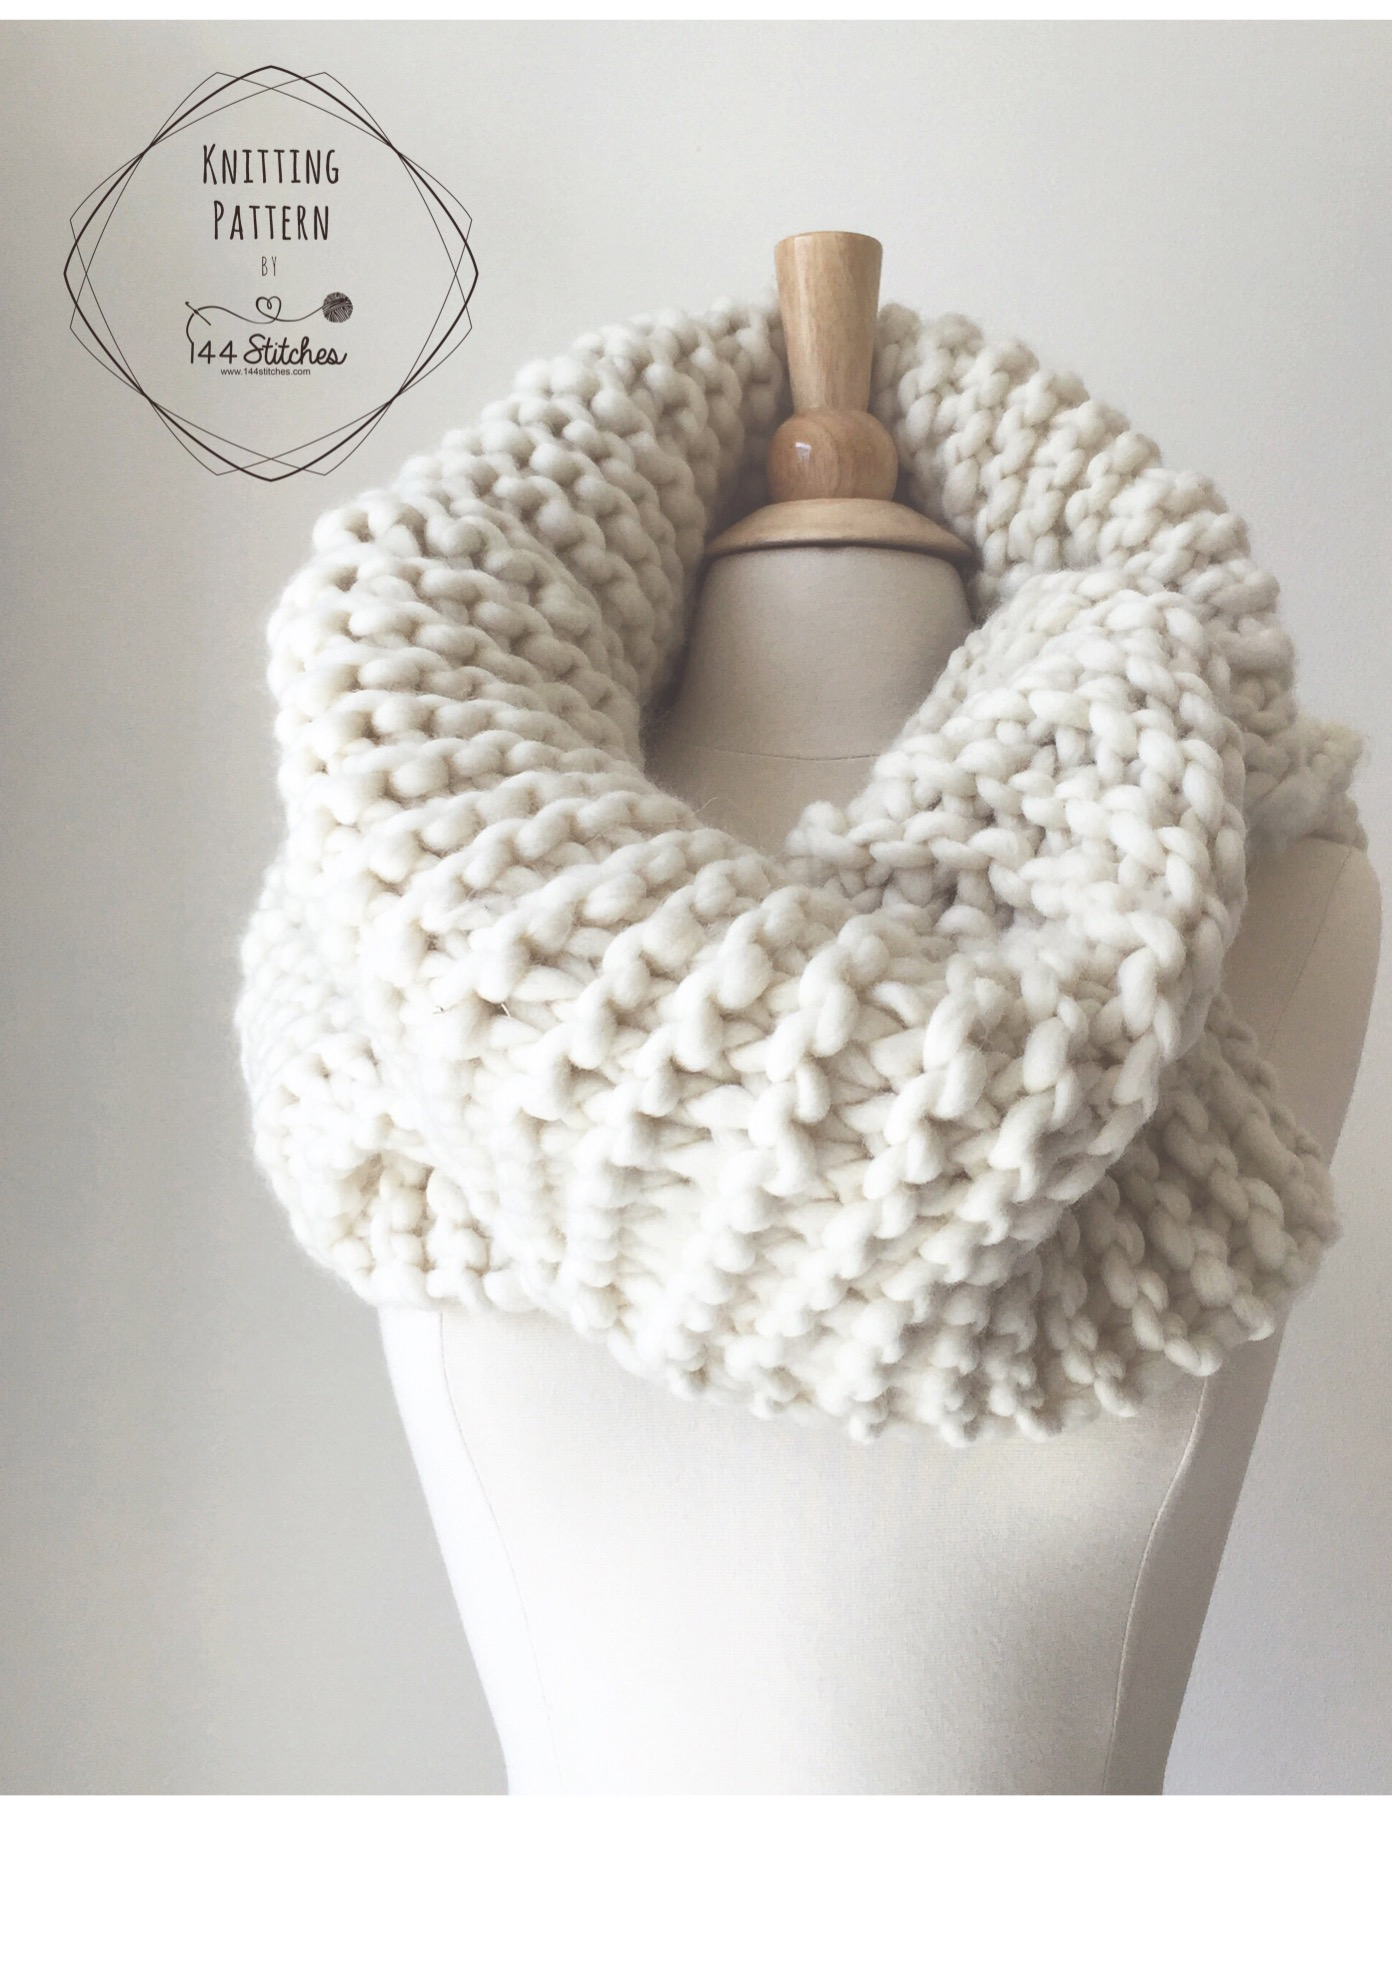 Harbour Cowl Pattern (Knitting) — 144 Stitches